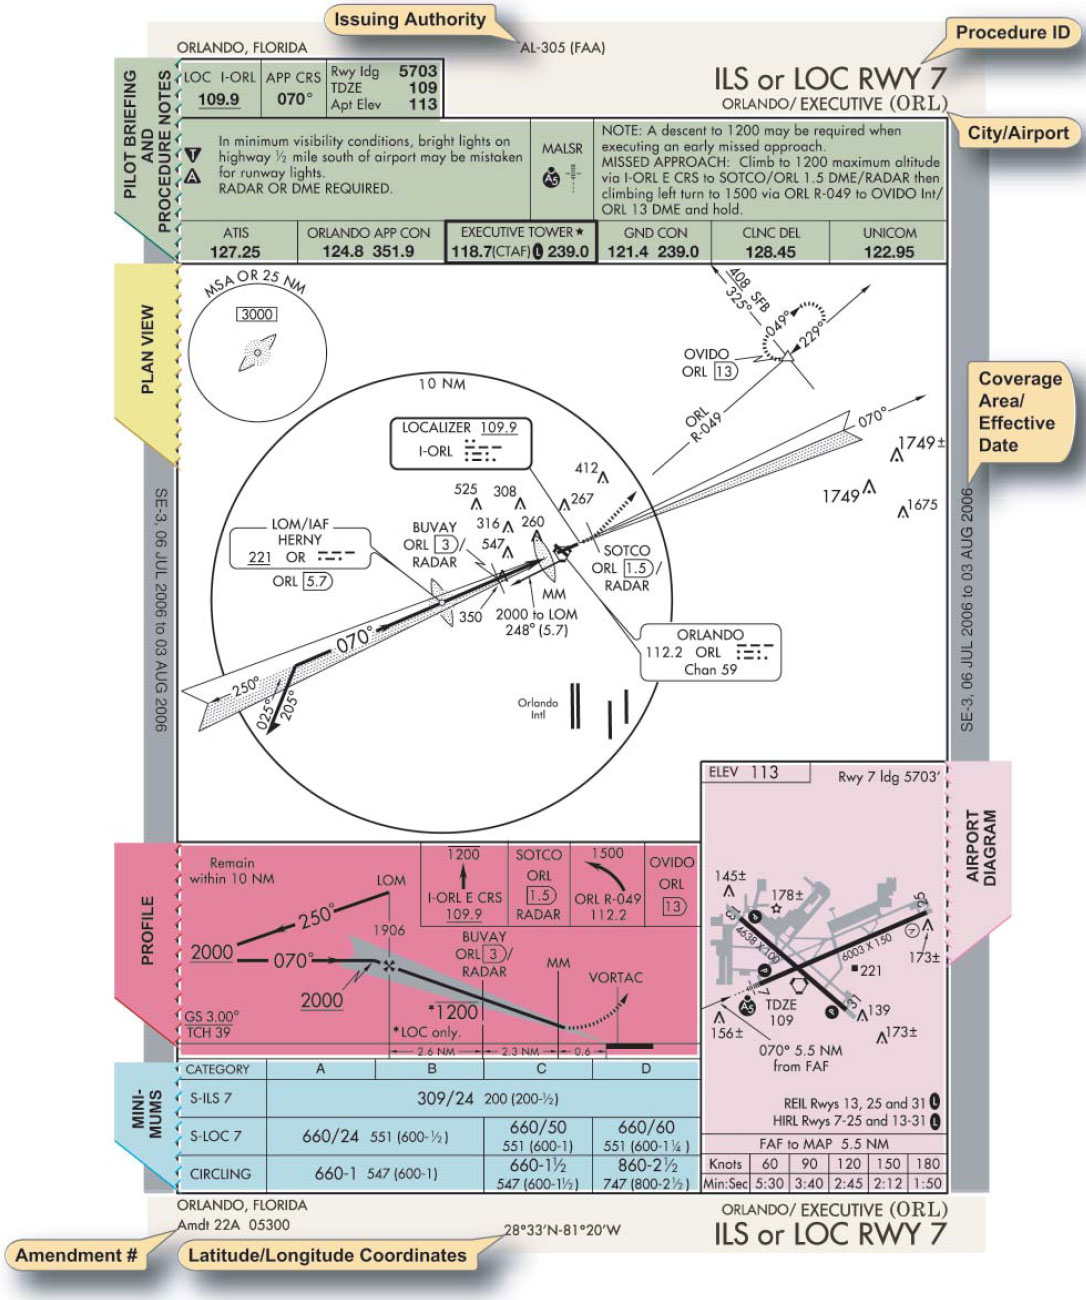 Figure 8-10. Instrument Approach Chart.